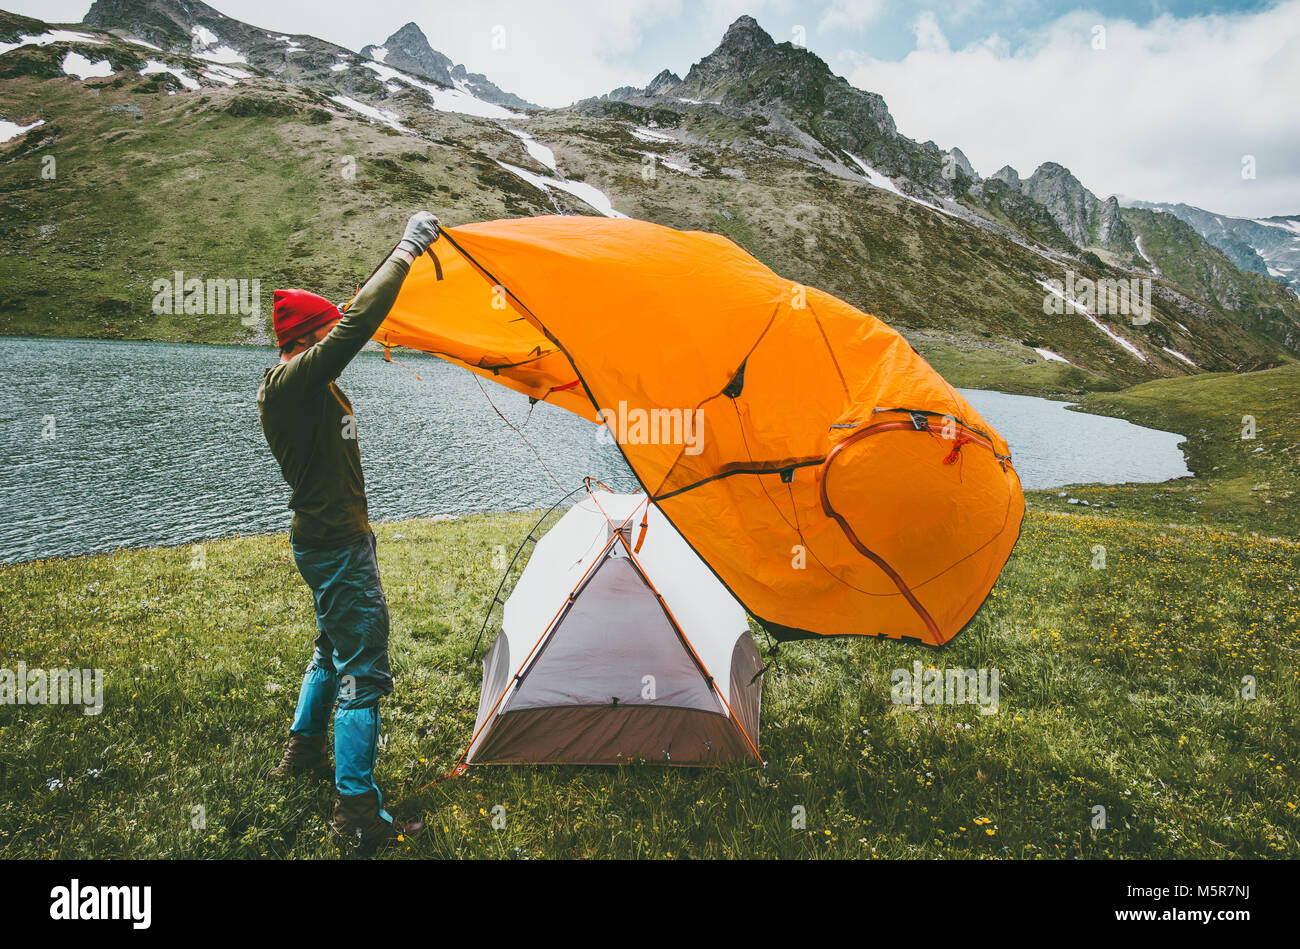 Man pitching Zelt Camping outdoor Travel Abenteuer lifestyle Konzept Berge reise Ferien in das wilde Stockbild